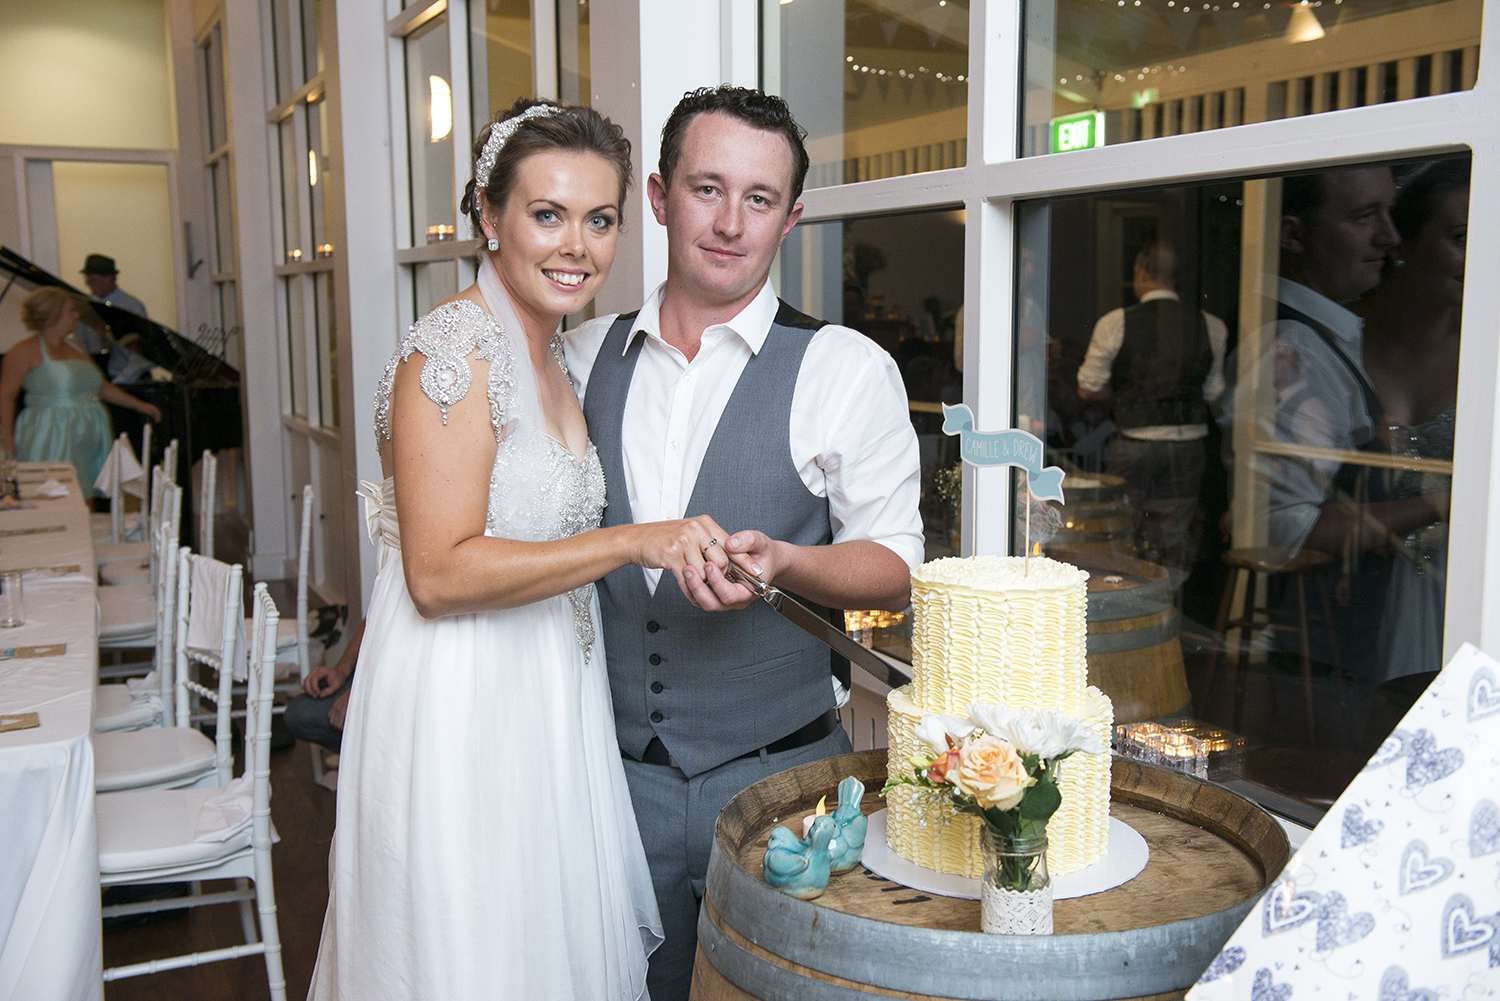 Our Wedding0761.jpg